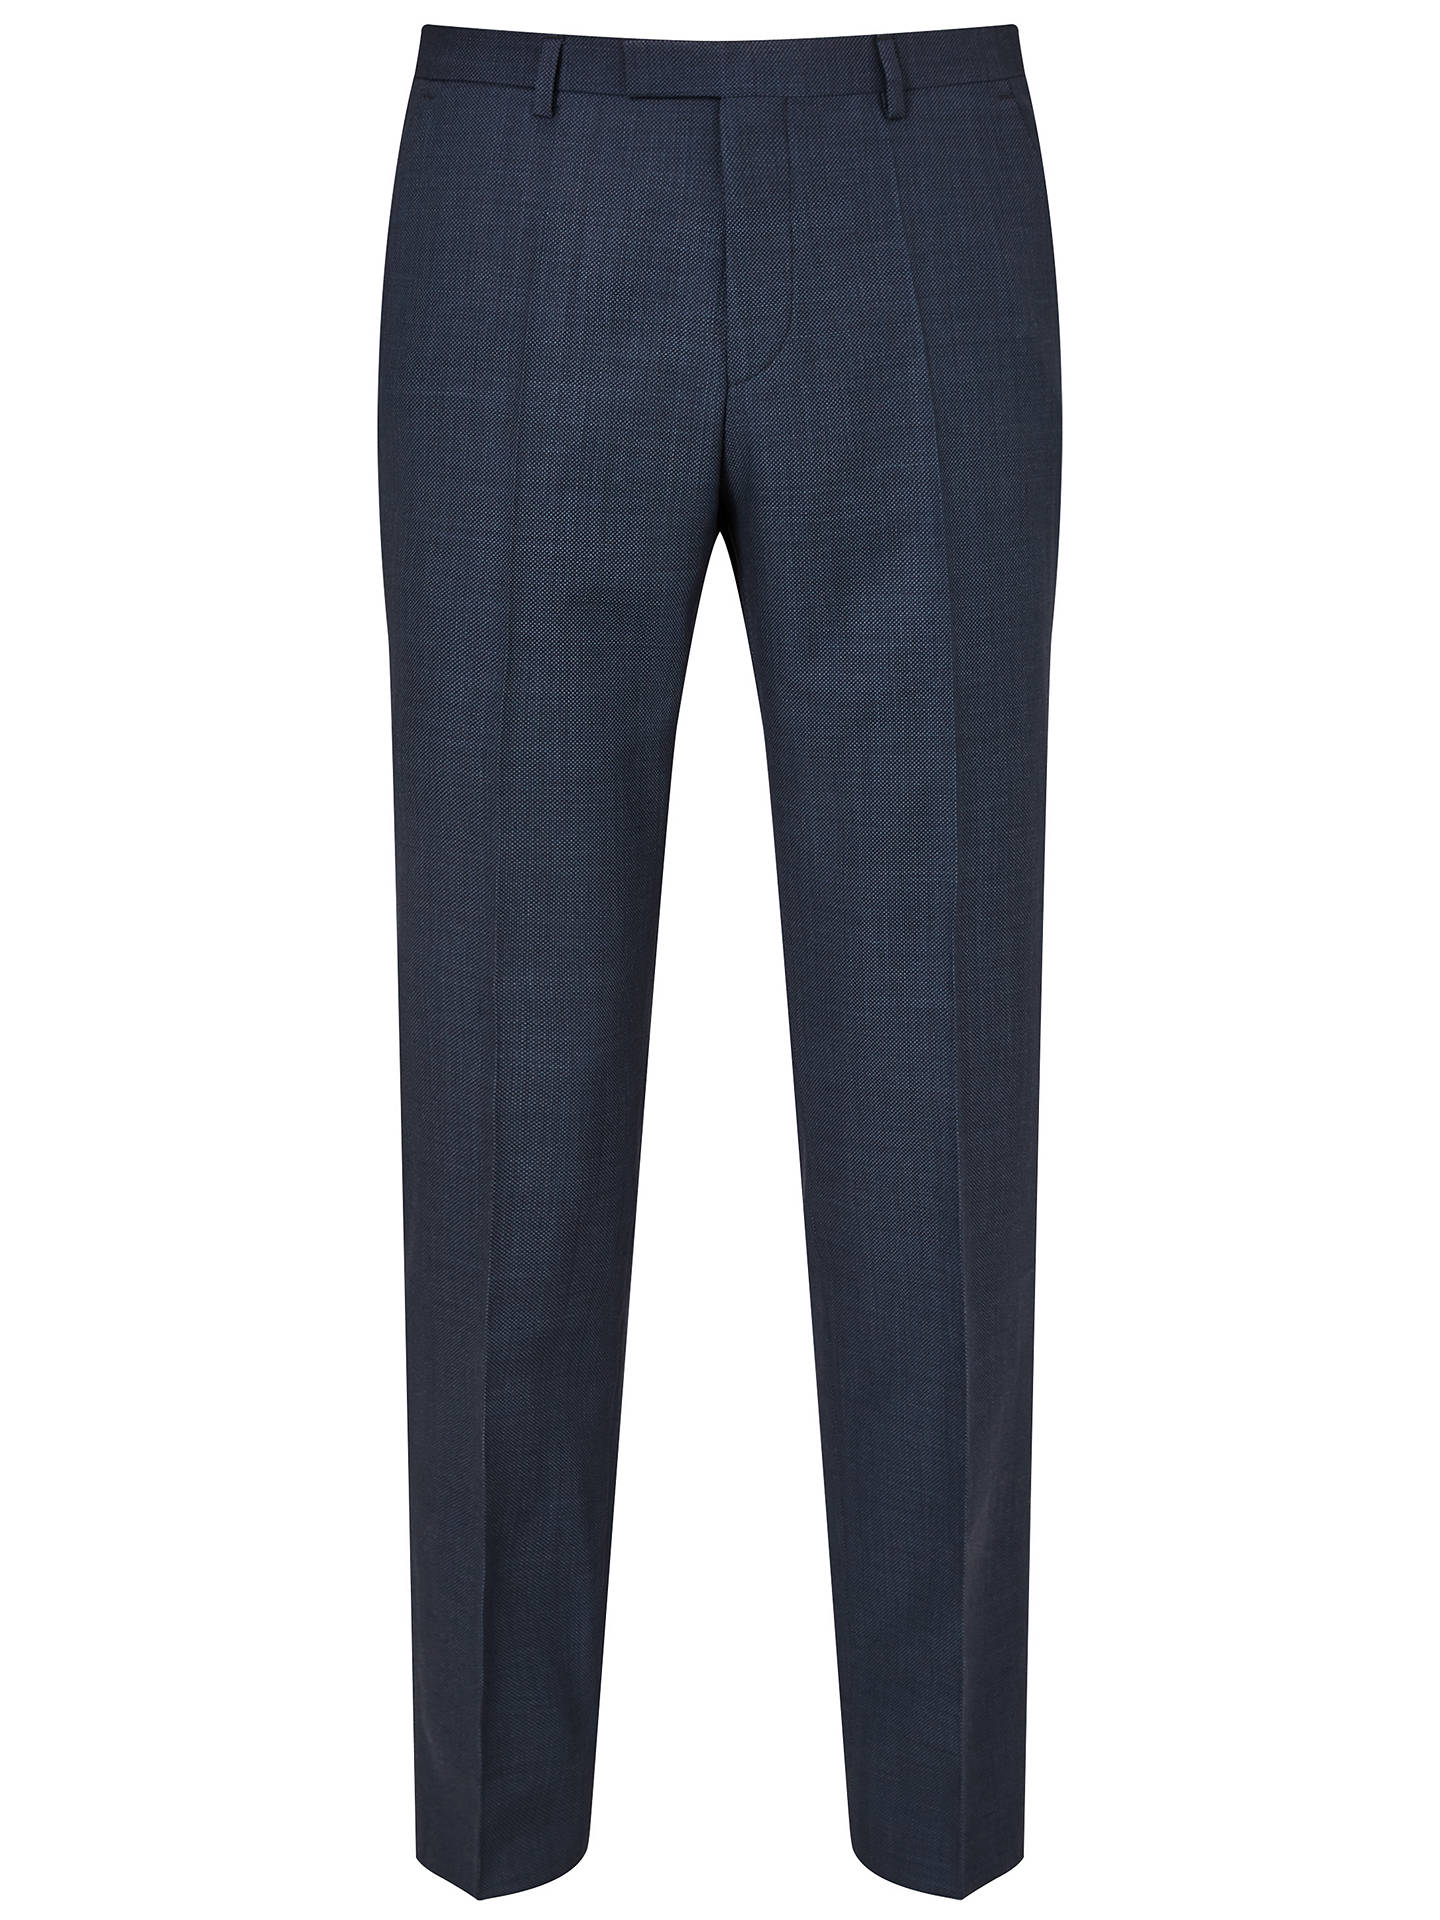 Buy HUGO by Hugo Boss Jeffery/Simmons Virgin Wool Regular Fit Suit, Navy, 44R Online at johnlewis.com